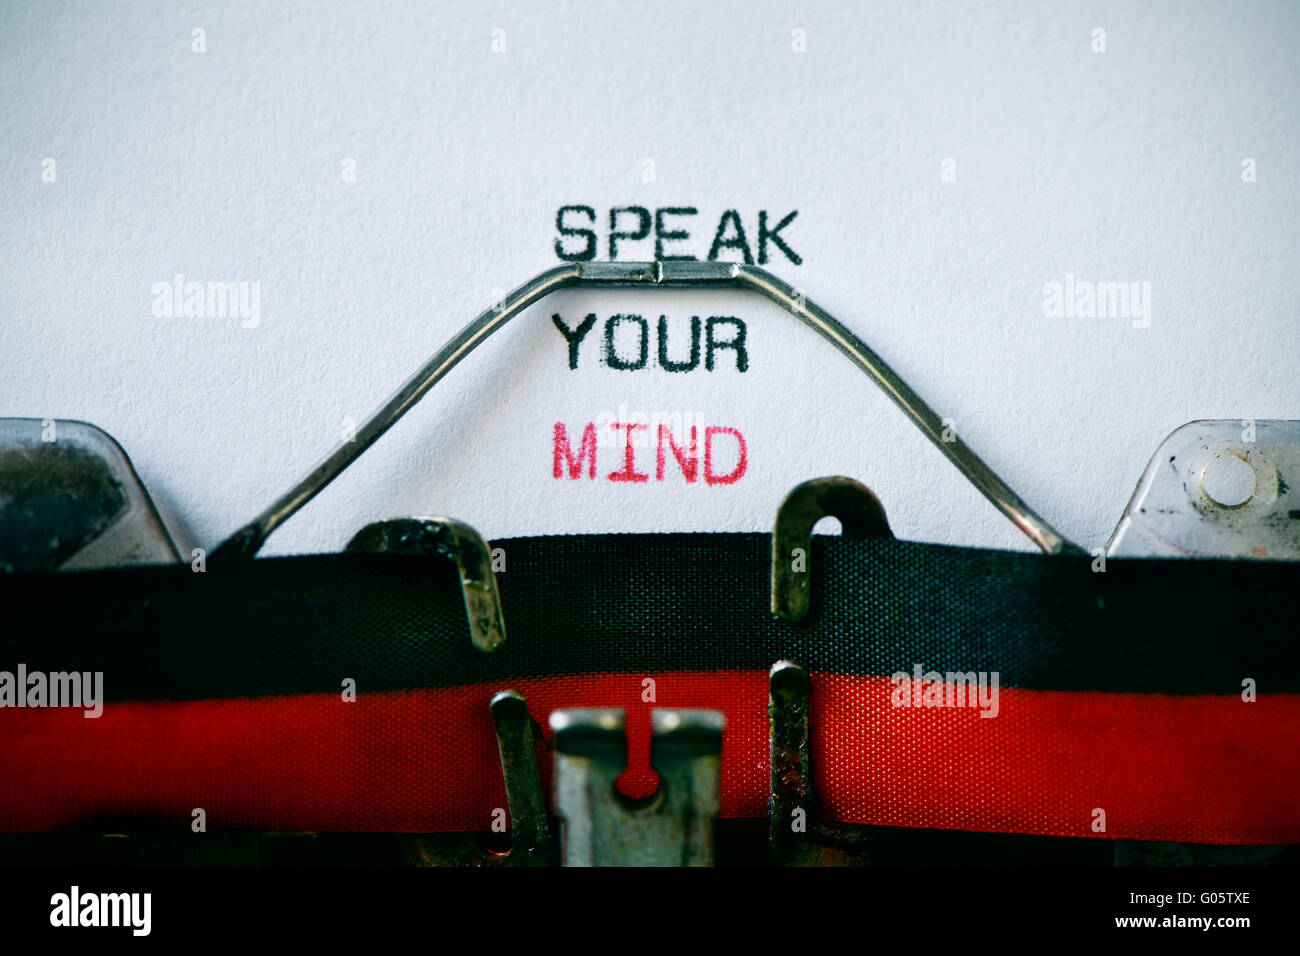 closeup of an old typewriter and the text speak your mind typewritten with it in a foil, with a vignette added - Stock Image